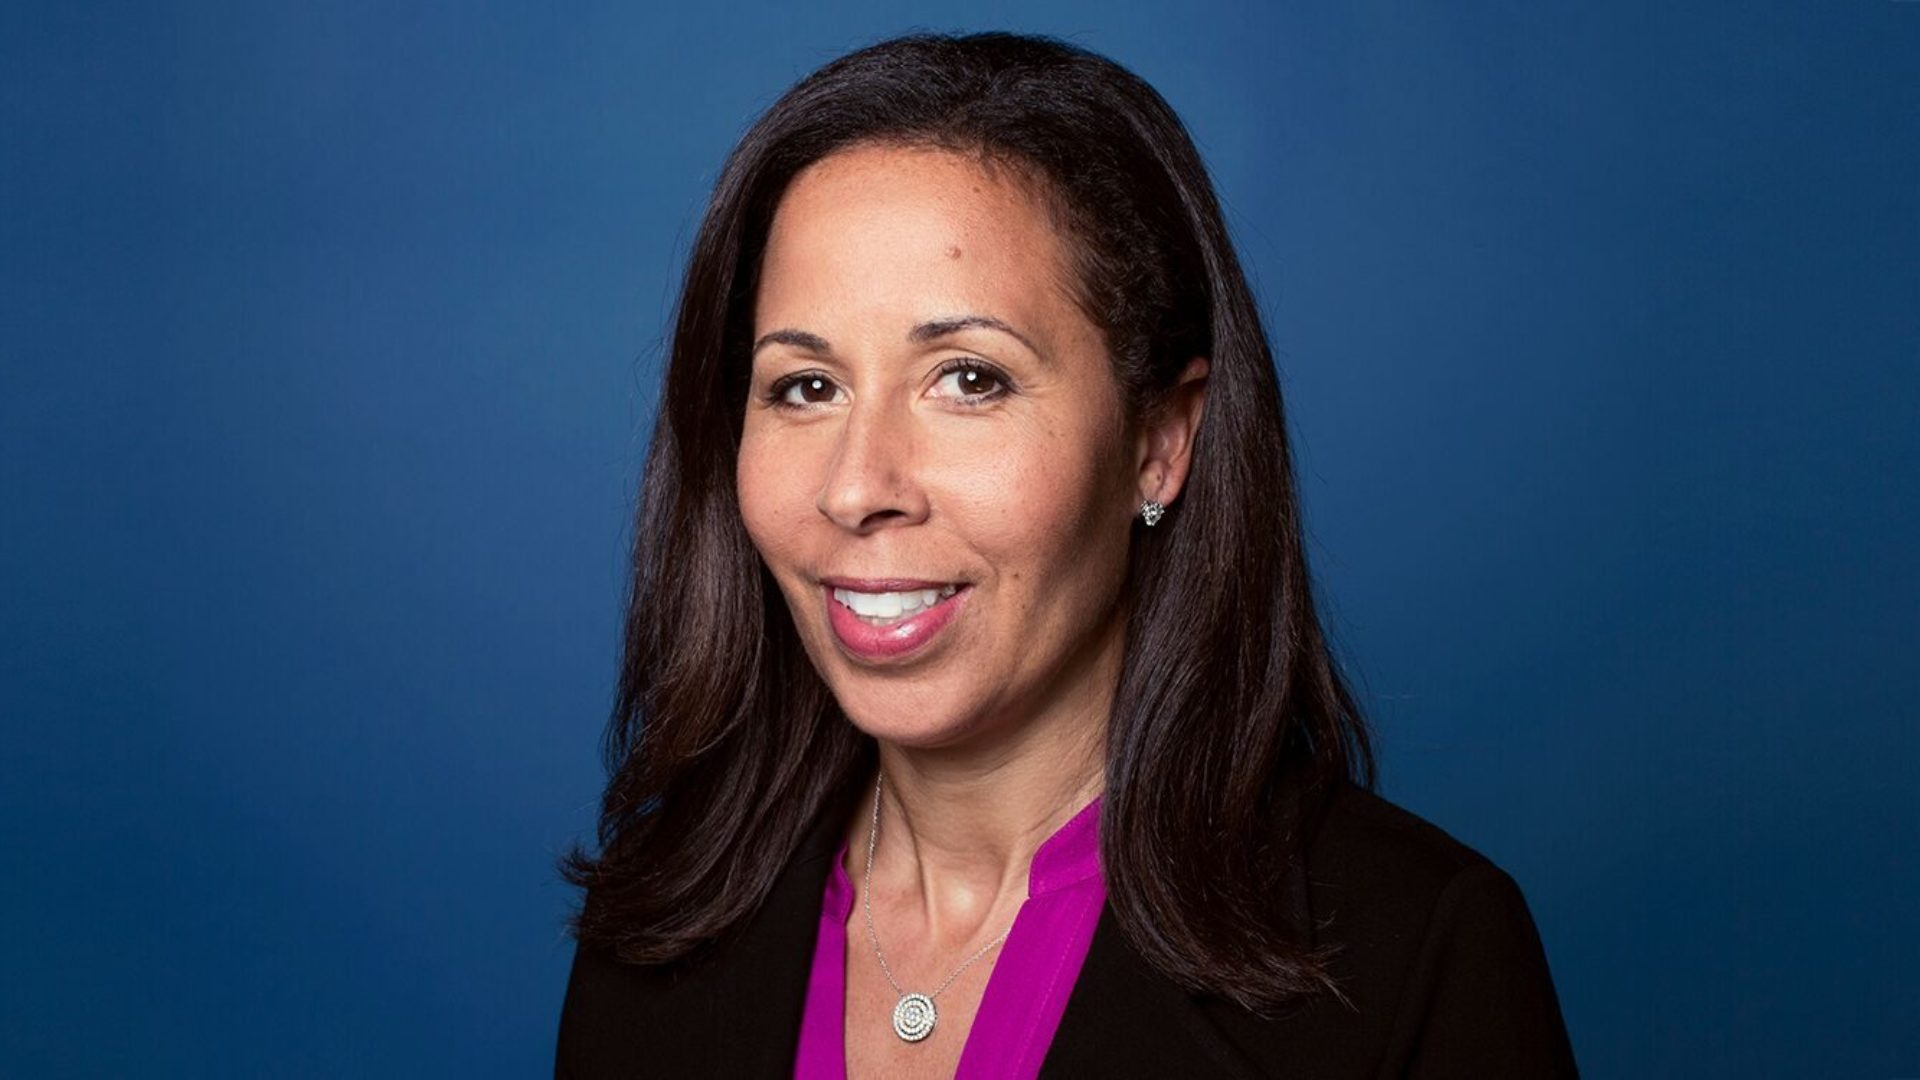 The First Black Woman Was Just Nominated To Facebook's Board Of Directors